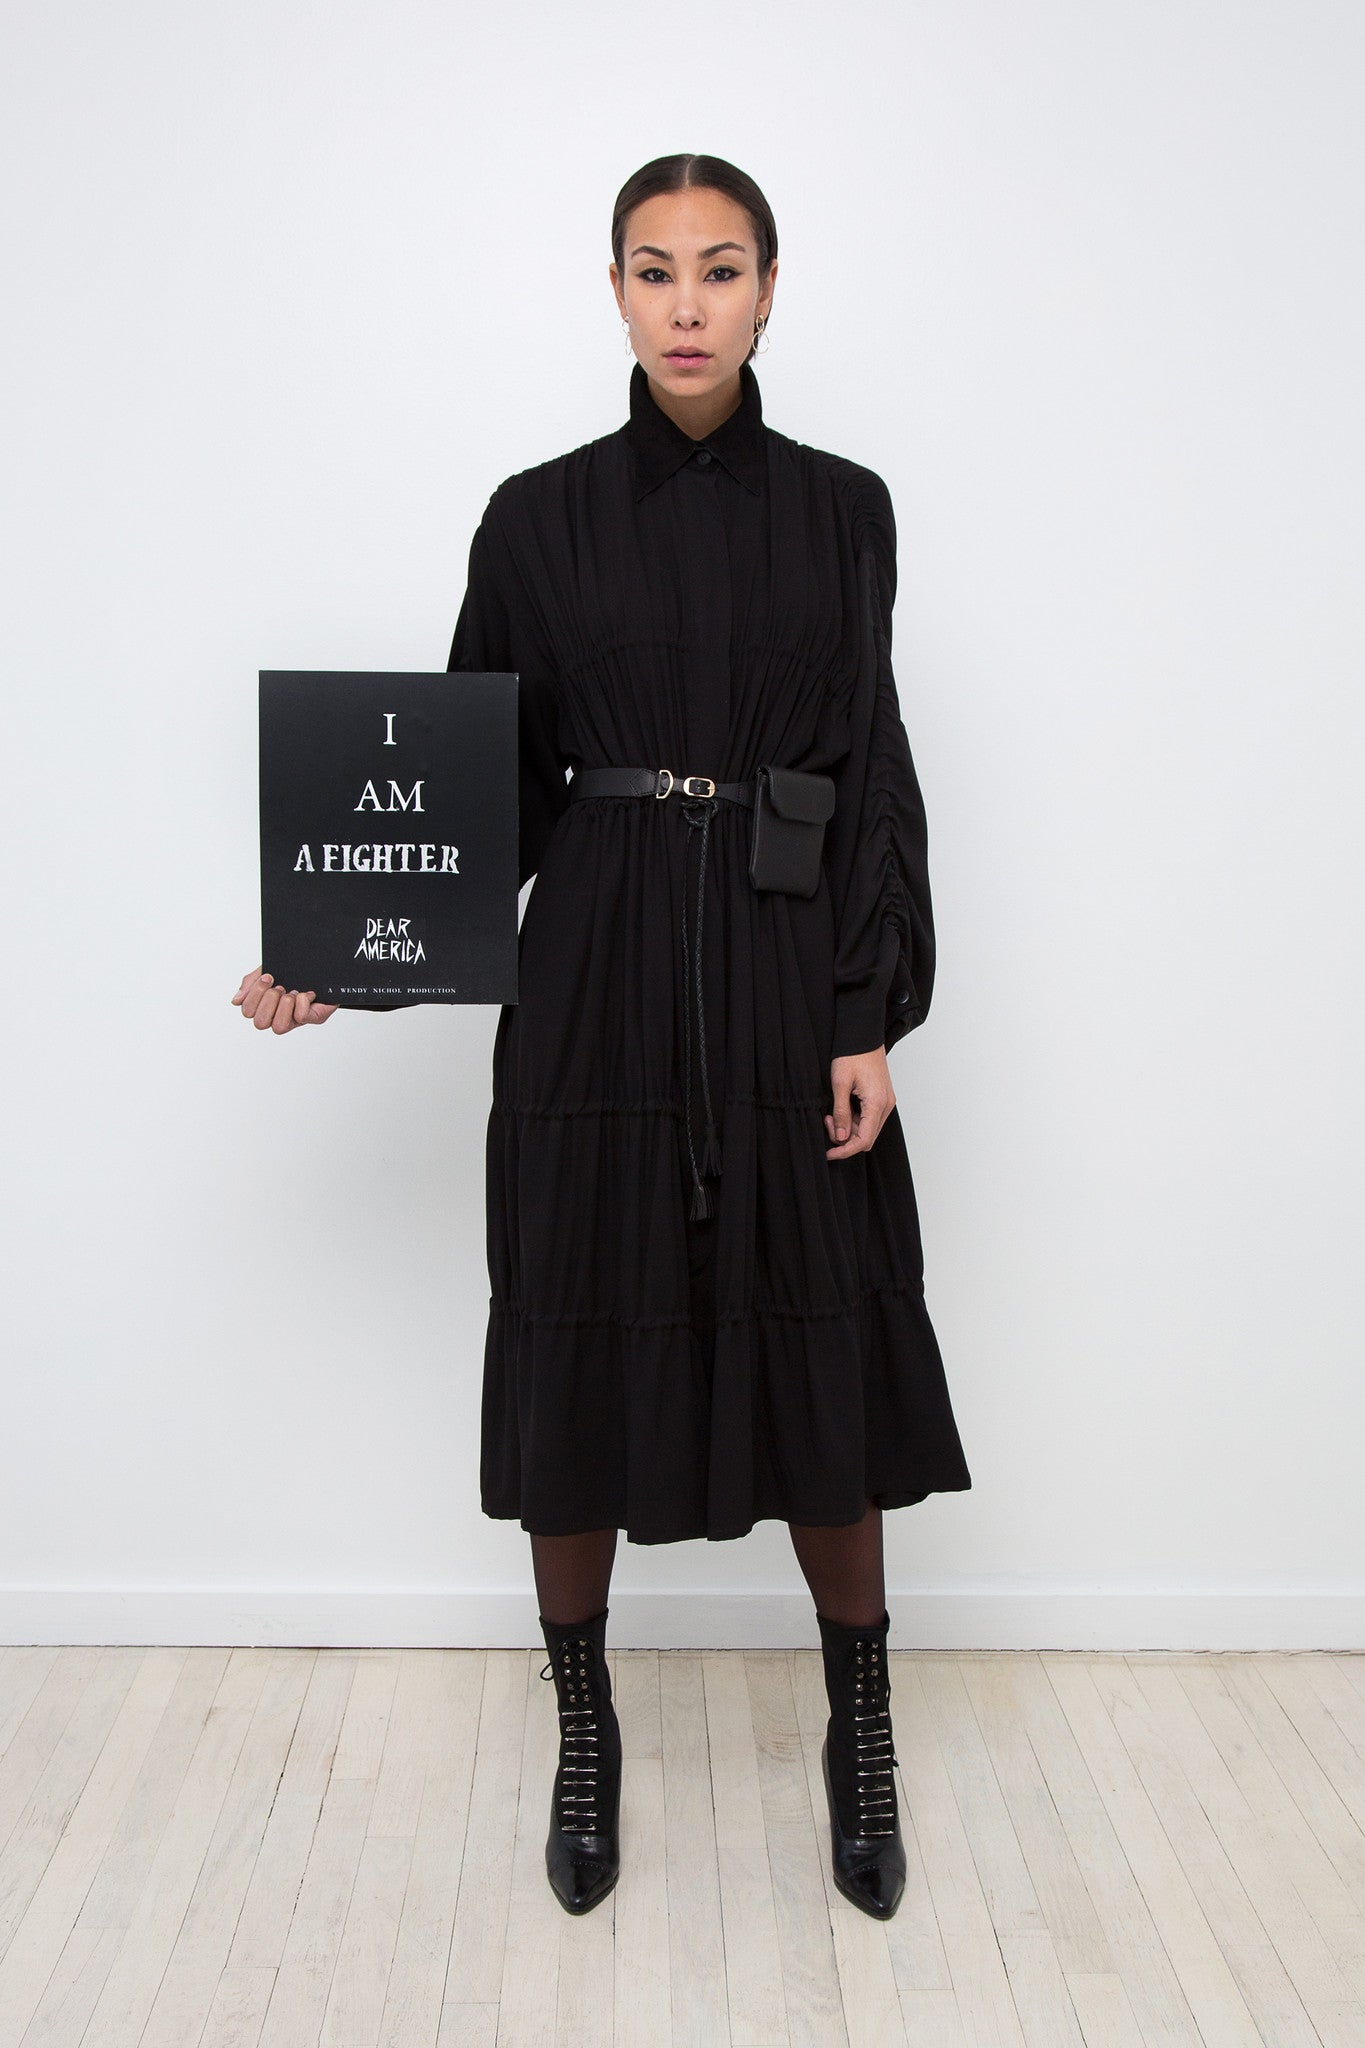 Sophie Model Wendy Nichol AW17 Clothing Fashion Anti Fascist Runway Show Dear America Handmade in NYC New York City Protest March I AM Drawstring Draw String Dress Coat Ruche Ruffle Collar Shirt Dress Red Long sleeves Blouse invisible buttons secret pockets Protest March